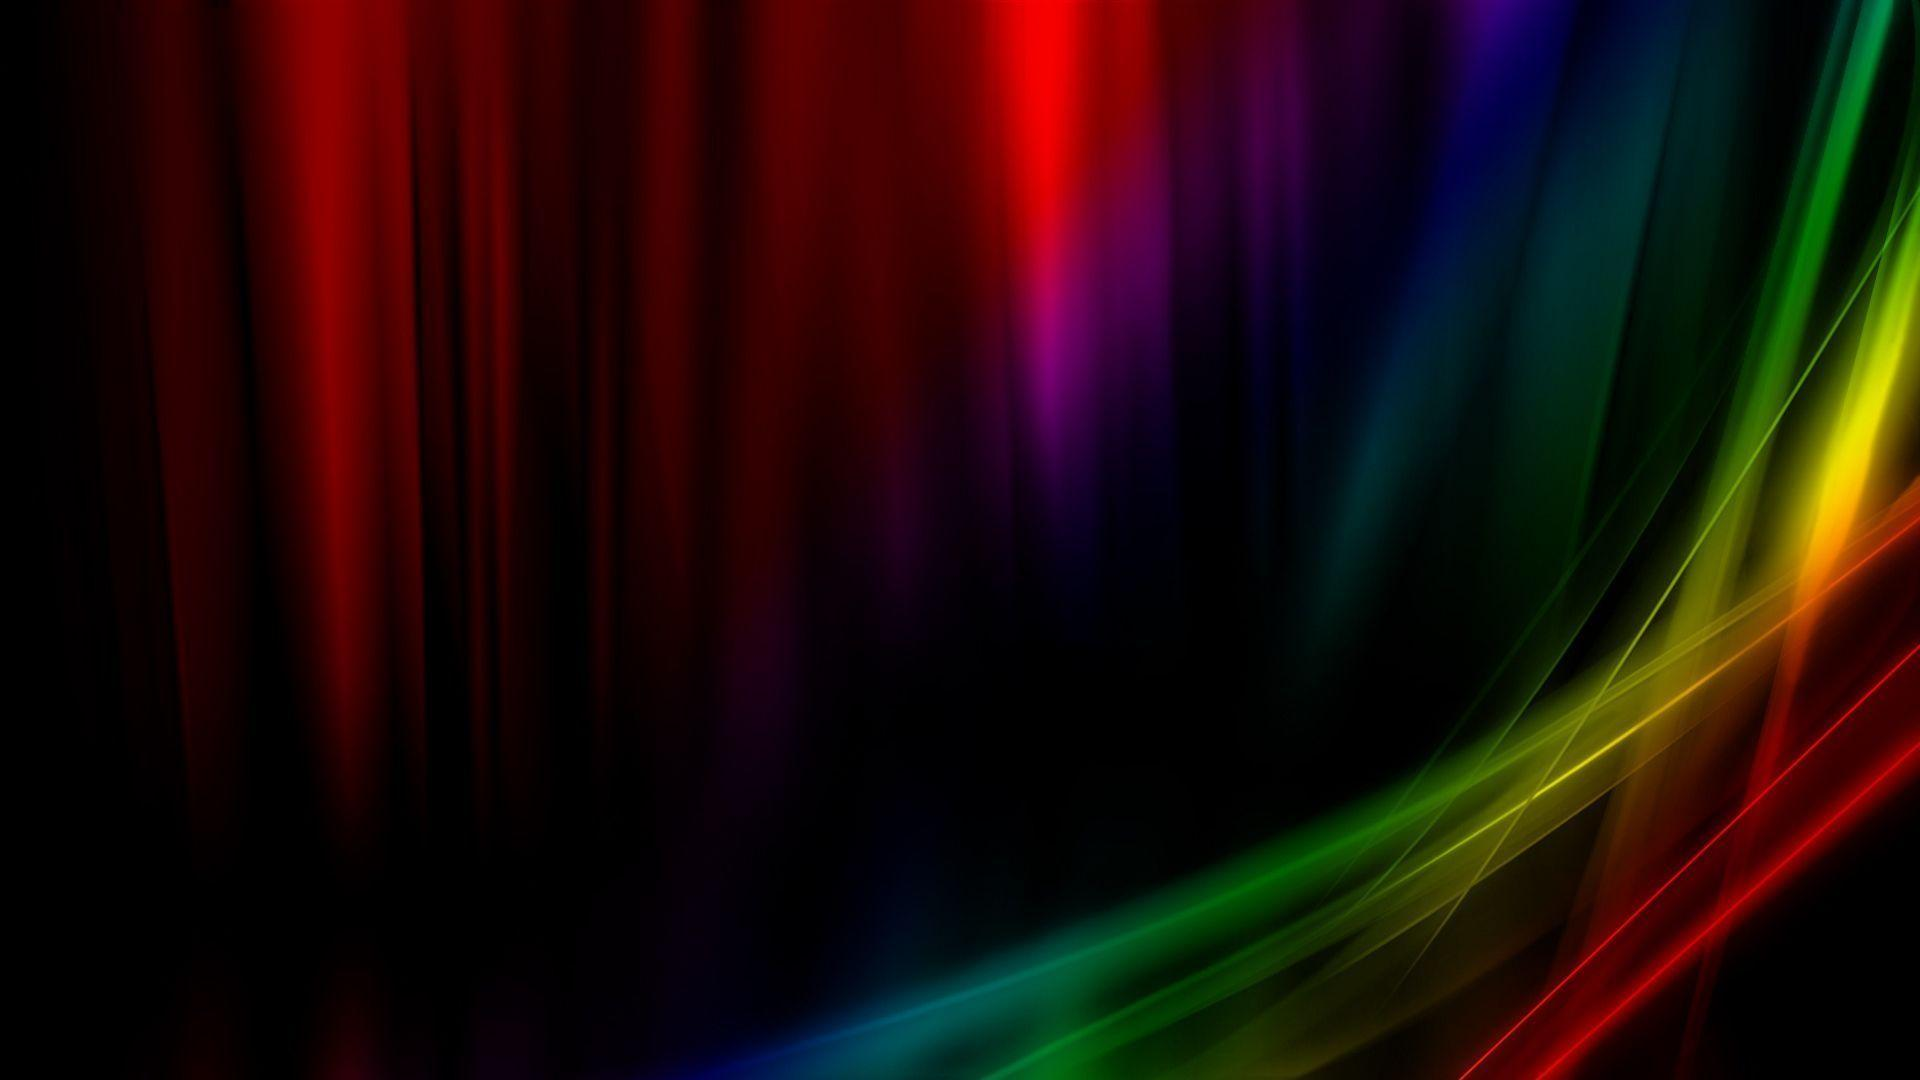 Bright Colored Backgrounds